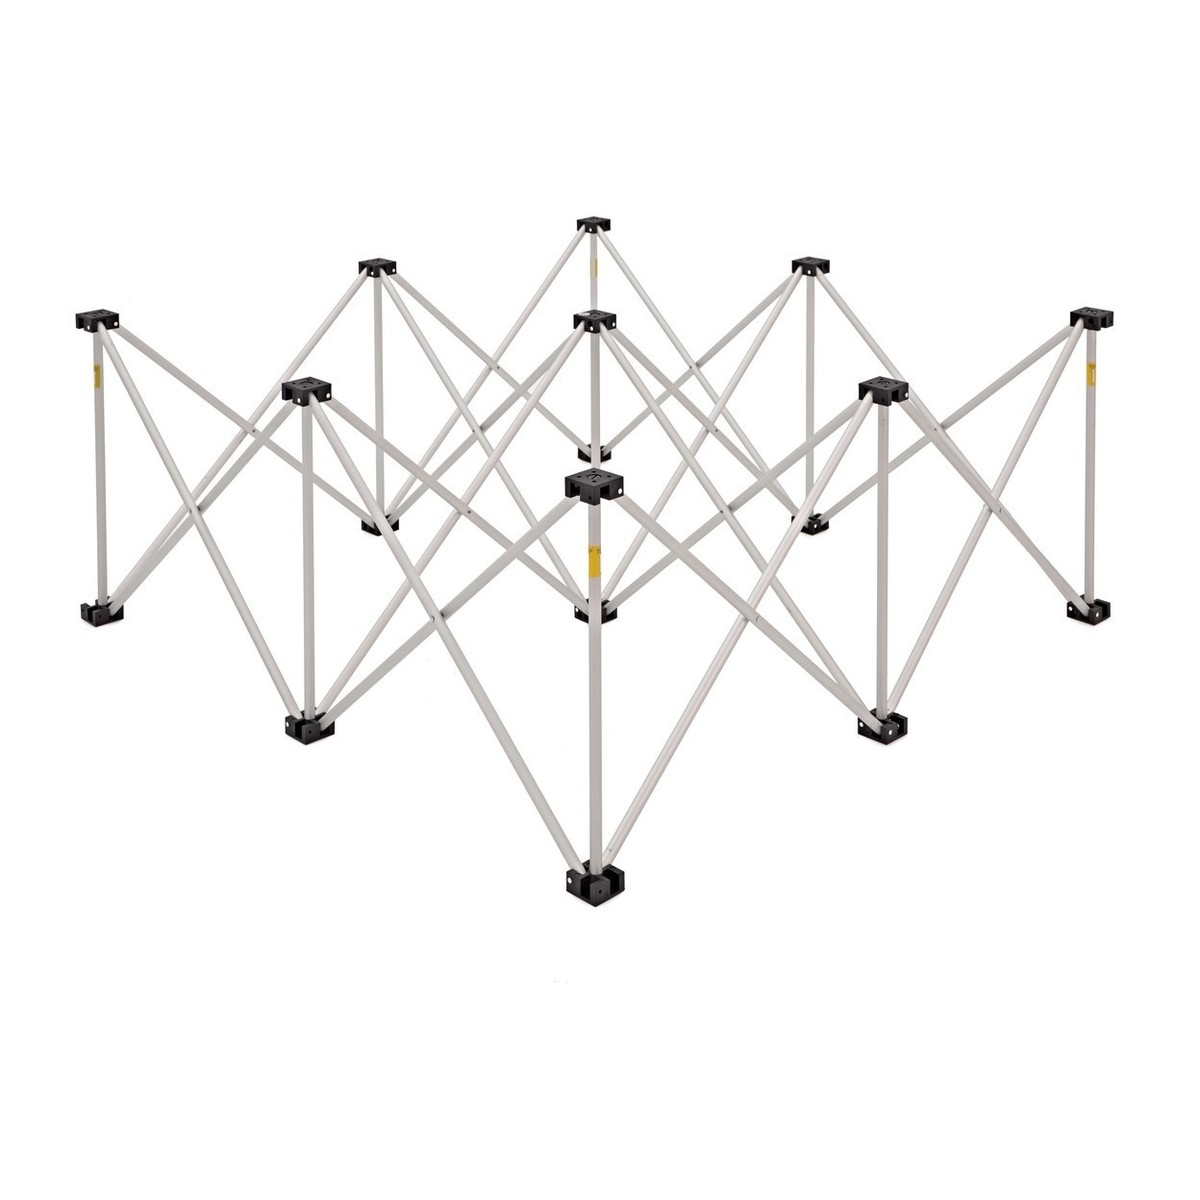 2m X 2m Portable Stage Kit By Gear4music 40cm At Gear4music